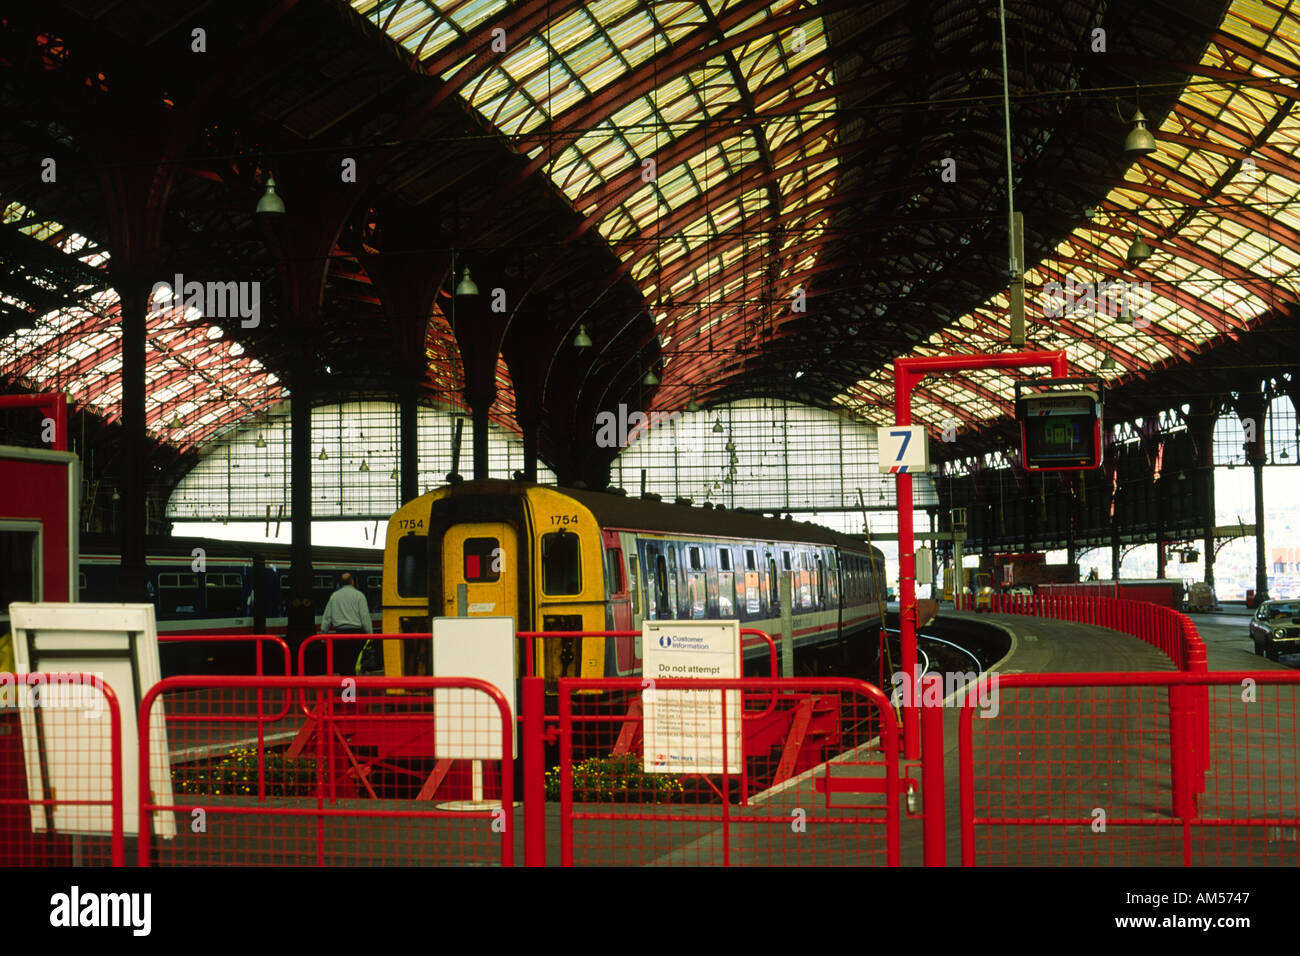 Network South East train Brighton railway station 1991 Sussex EnglandStock Photo